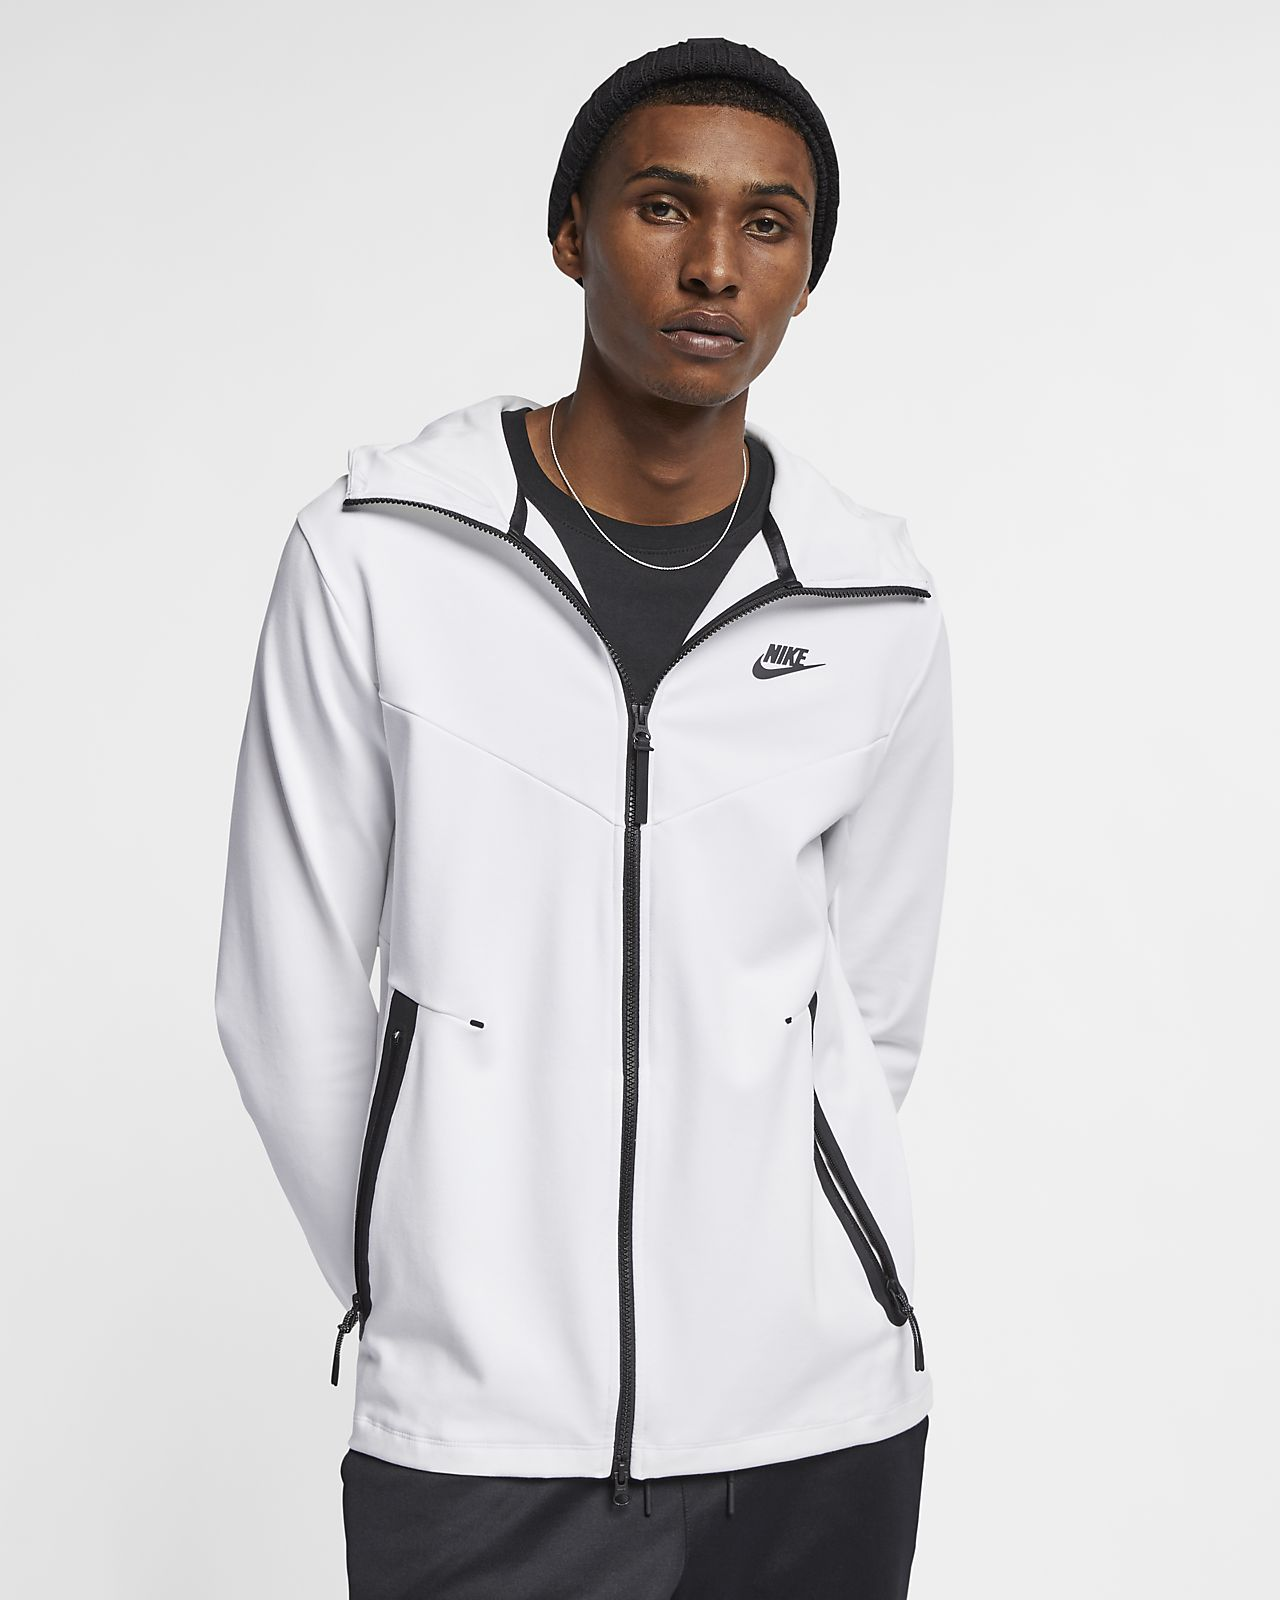 4c6a4fd40237 Nike Sportswear Tech Pack Men s Full-Zip Hoodie. Nike.com